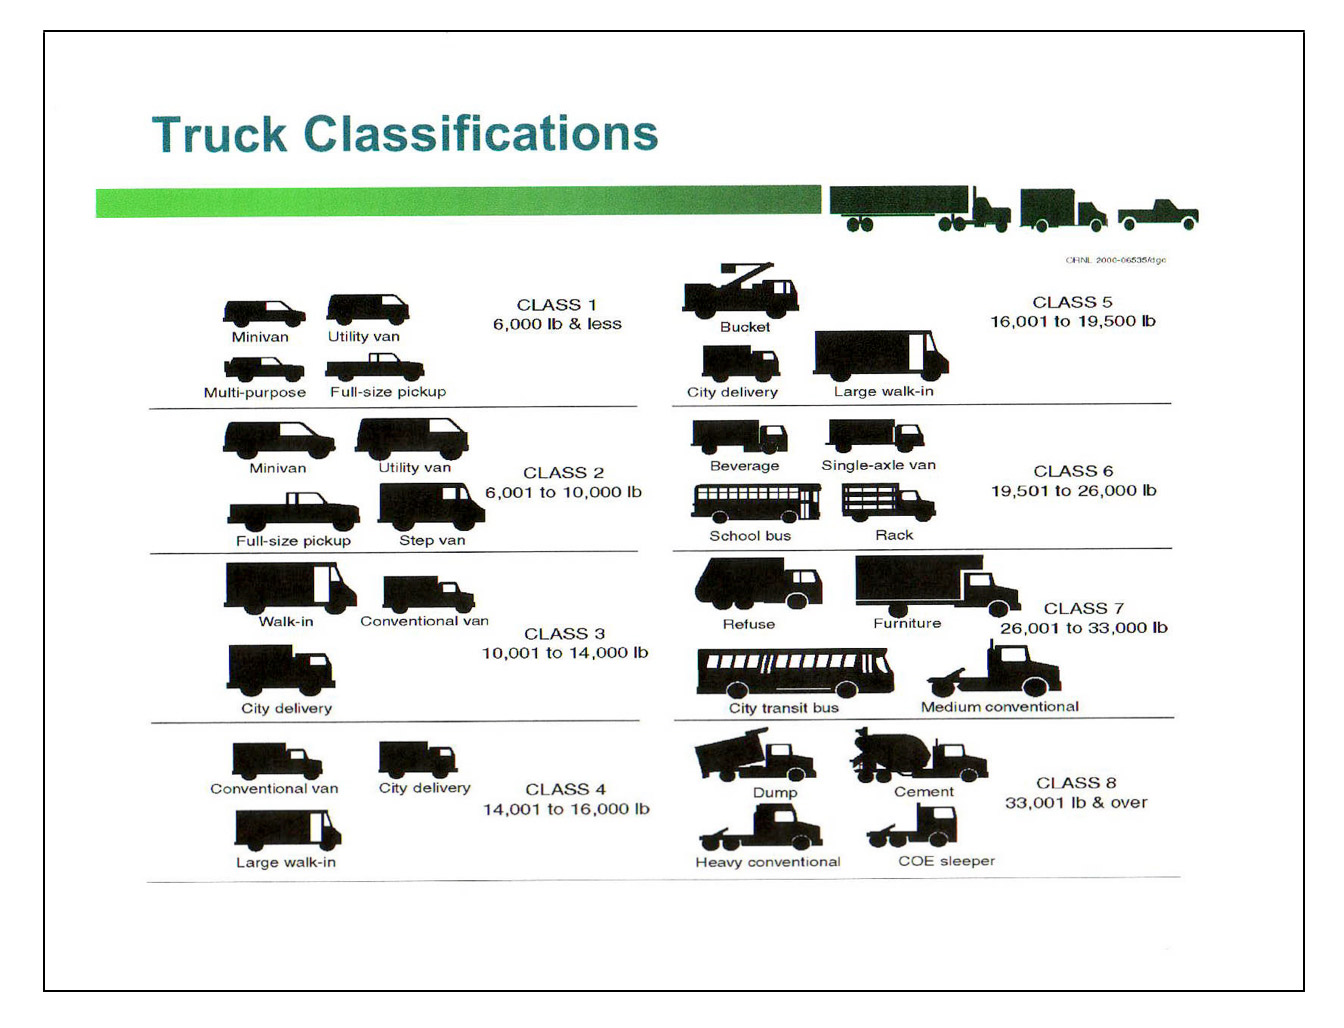 Light Truck Tire Diagram together with DHJhY3Rvci10cmFpbGVyLXNjaGVtYXRpY3M also B71 together with Electric Trailer Brake Parts Diagram in addition Rv Wiring. on semi trailer tire diagram